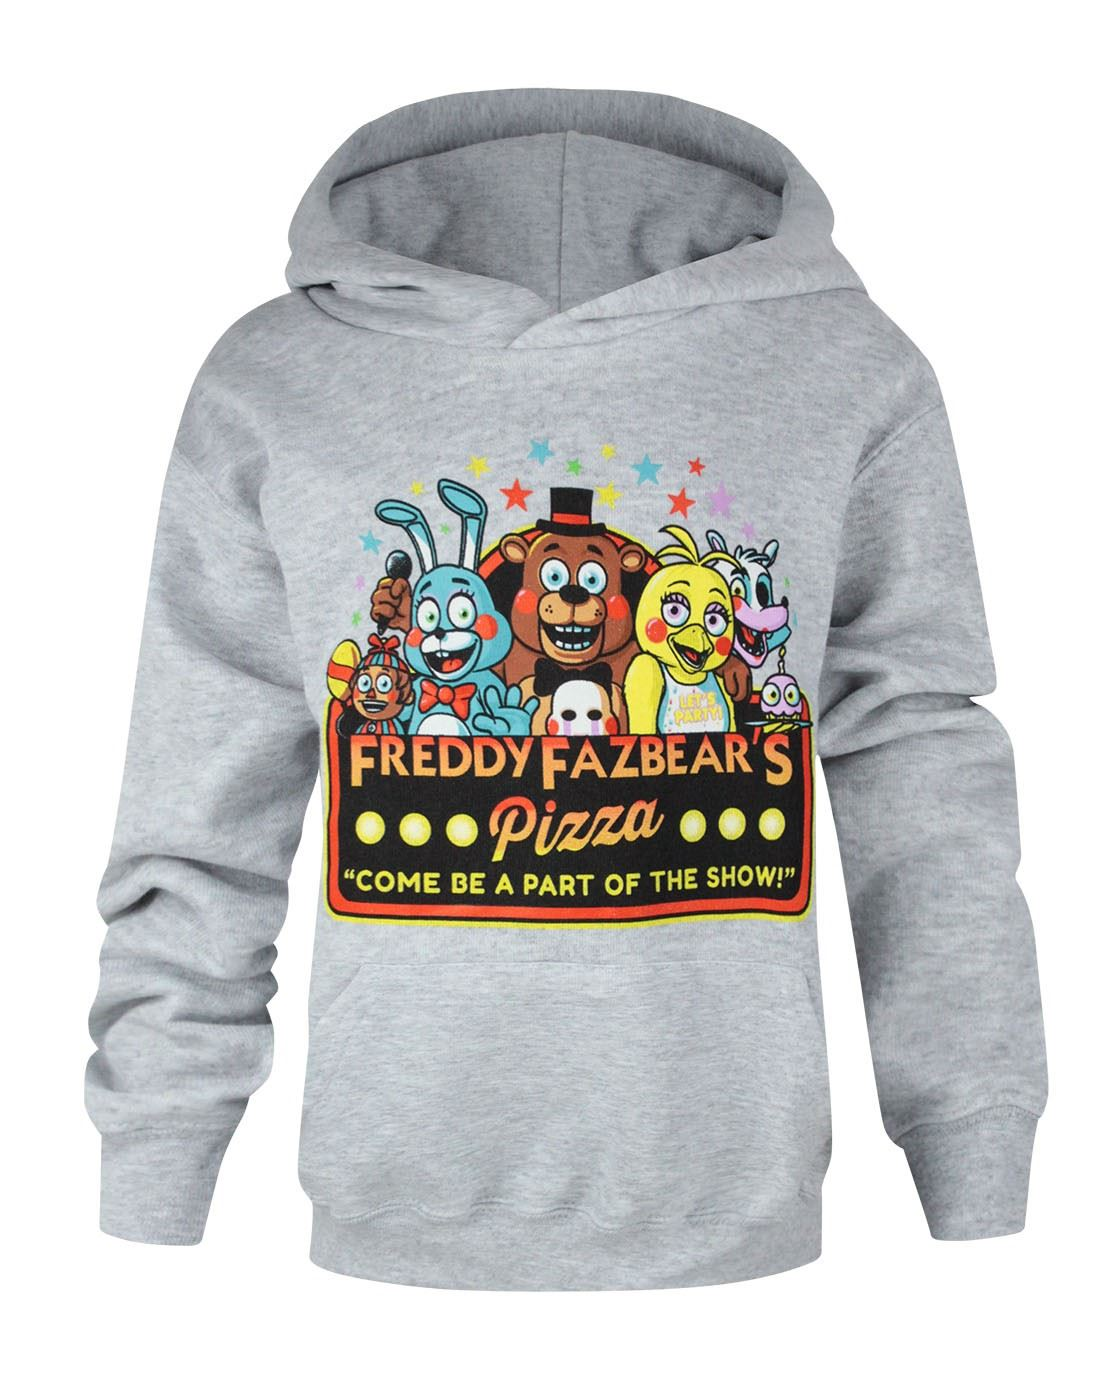 Five nights at freddys hoodie 5 night freddies hoody part of the show